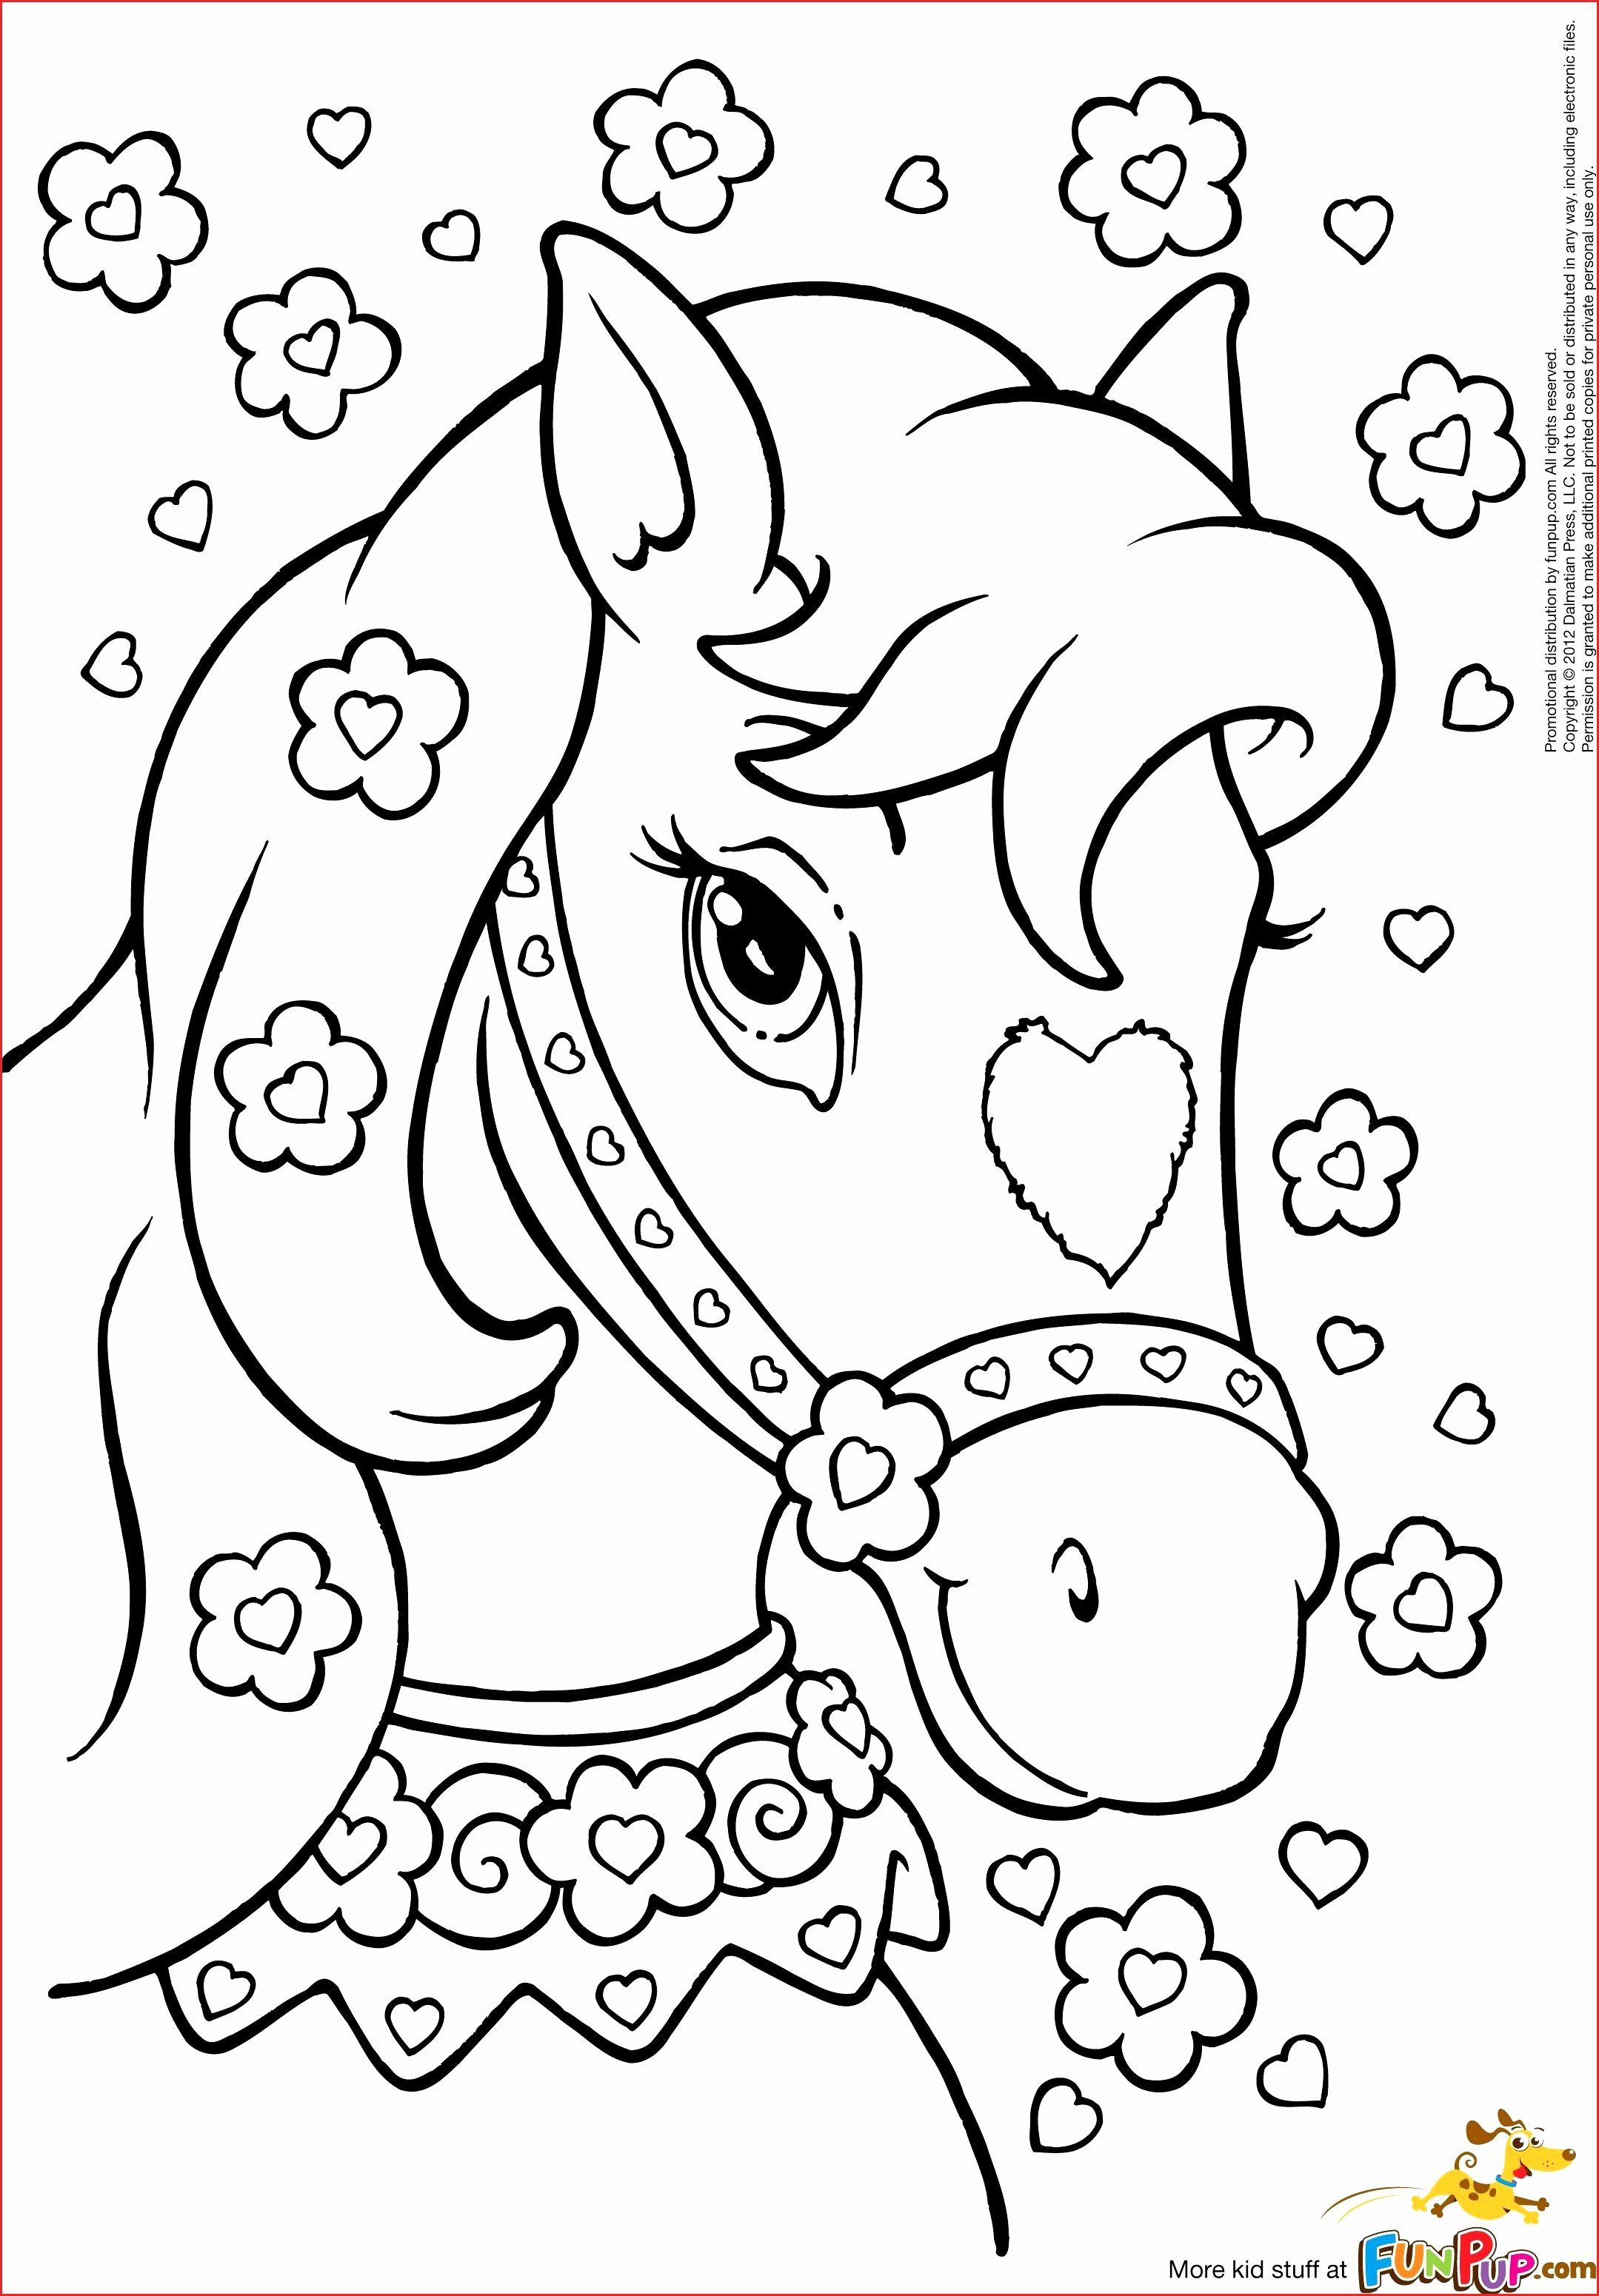 School Of Fish Coloring Page Lovely Horse Coloring Pages 6630 Printable Horse Color In 2020 Unicorn Coloring Pages Disney Princess Coloring Pages Animal Coloring Pages [ 3101 x 2159 Pixel ]